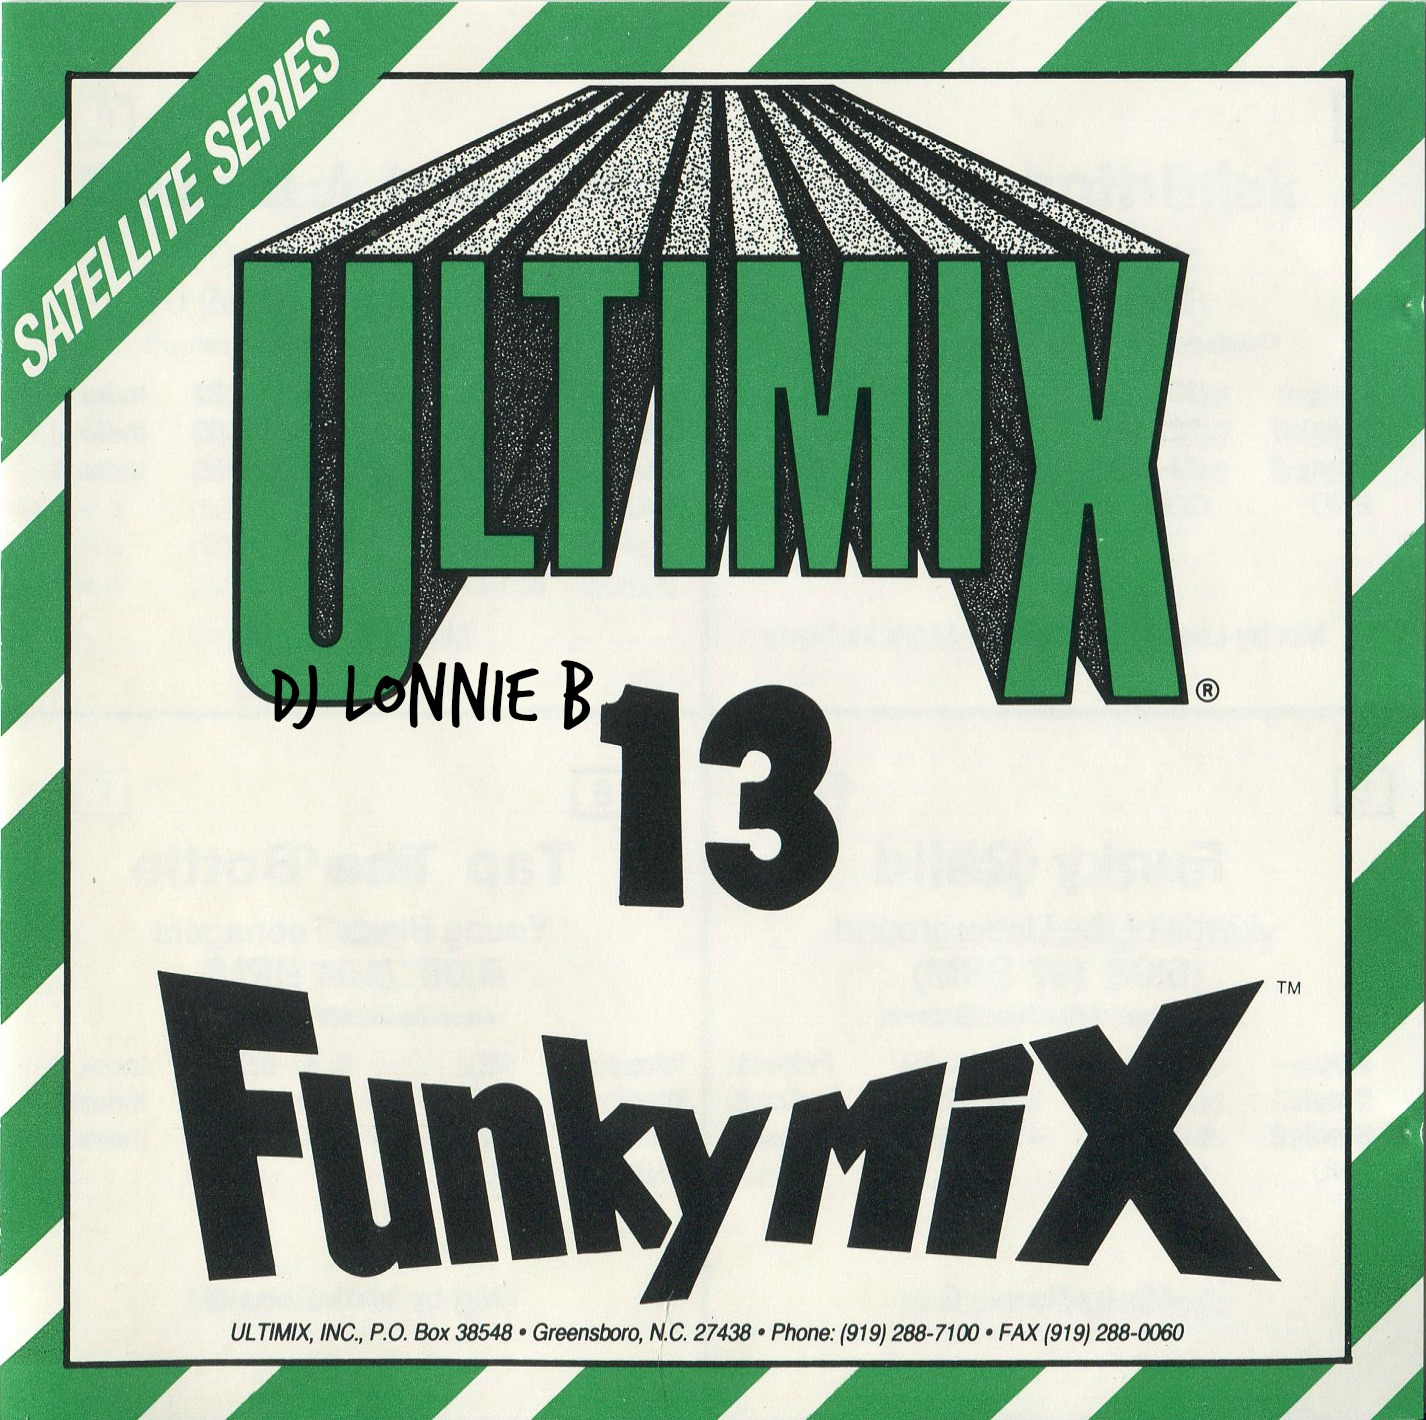 complete funkymix collection